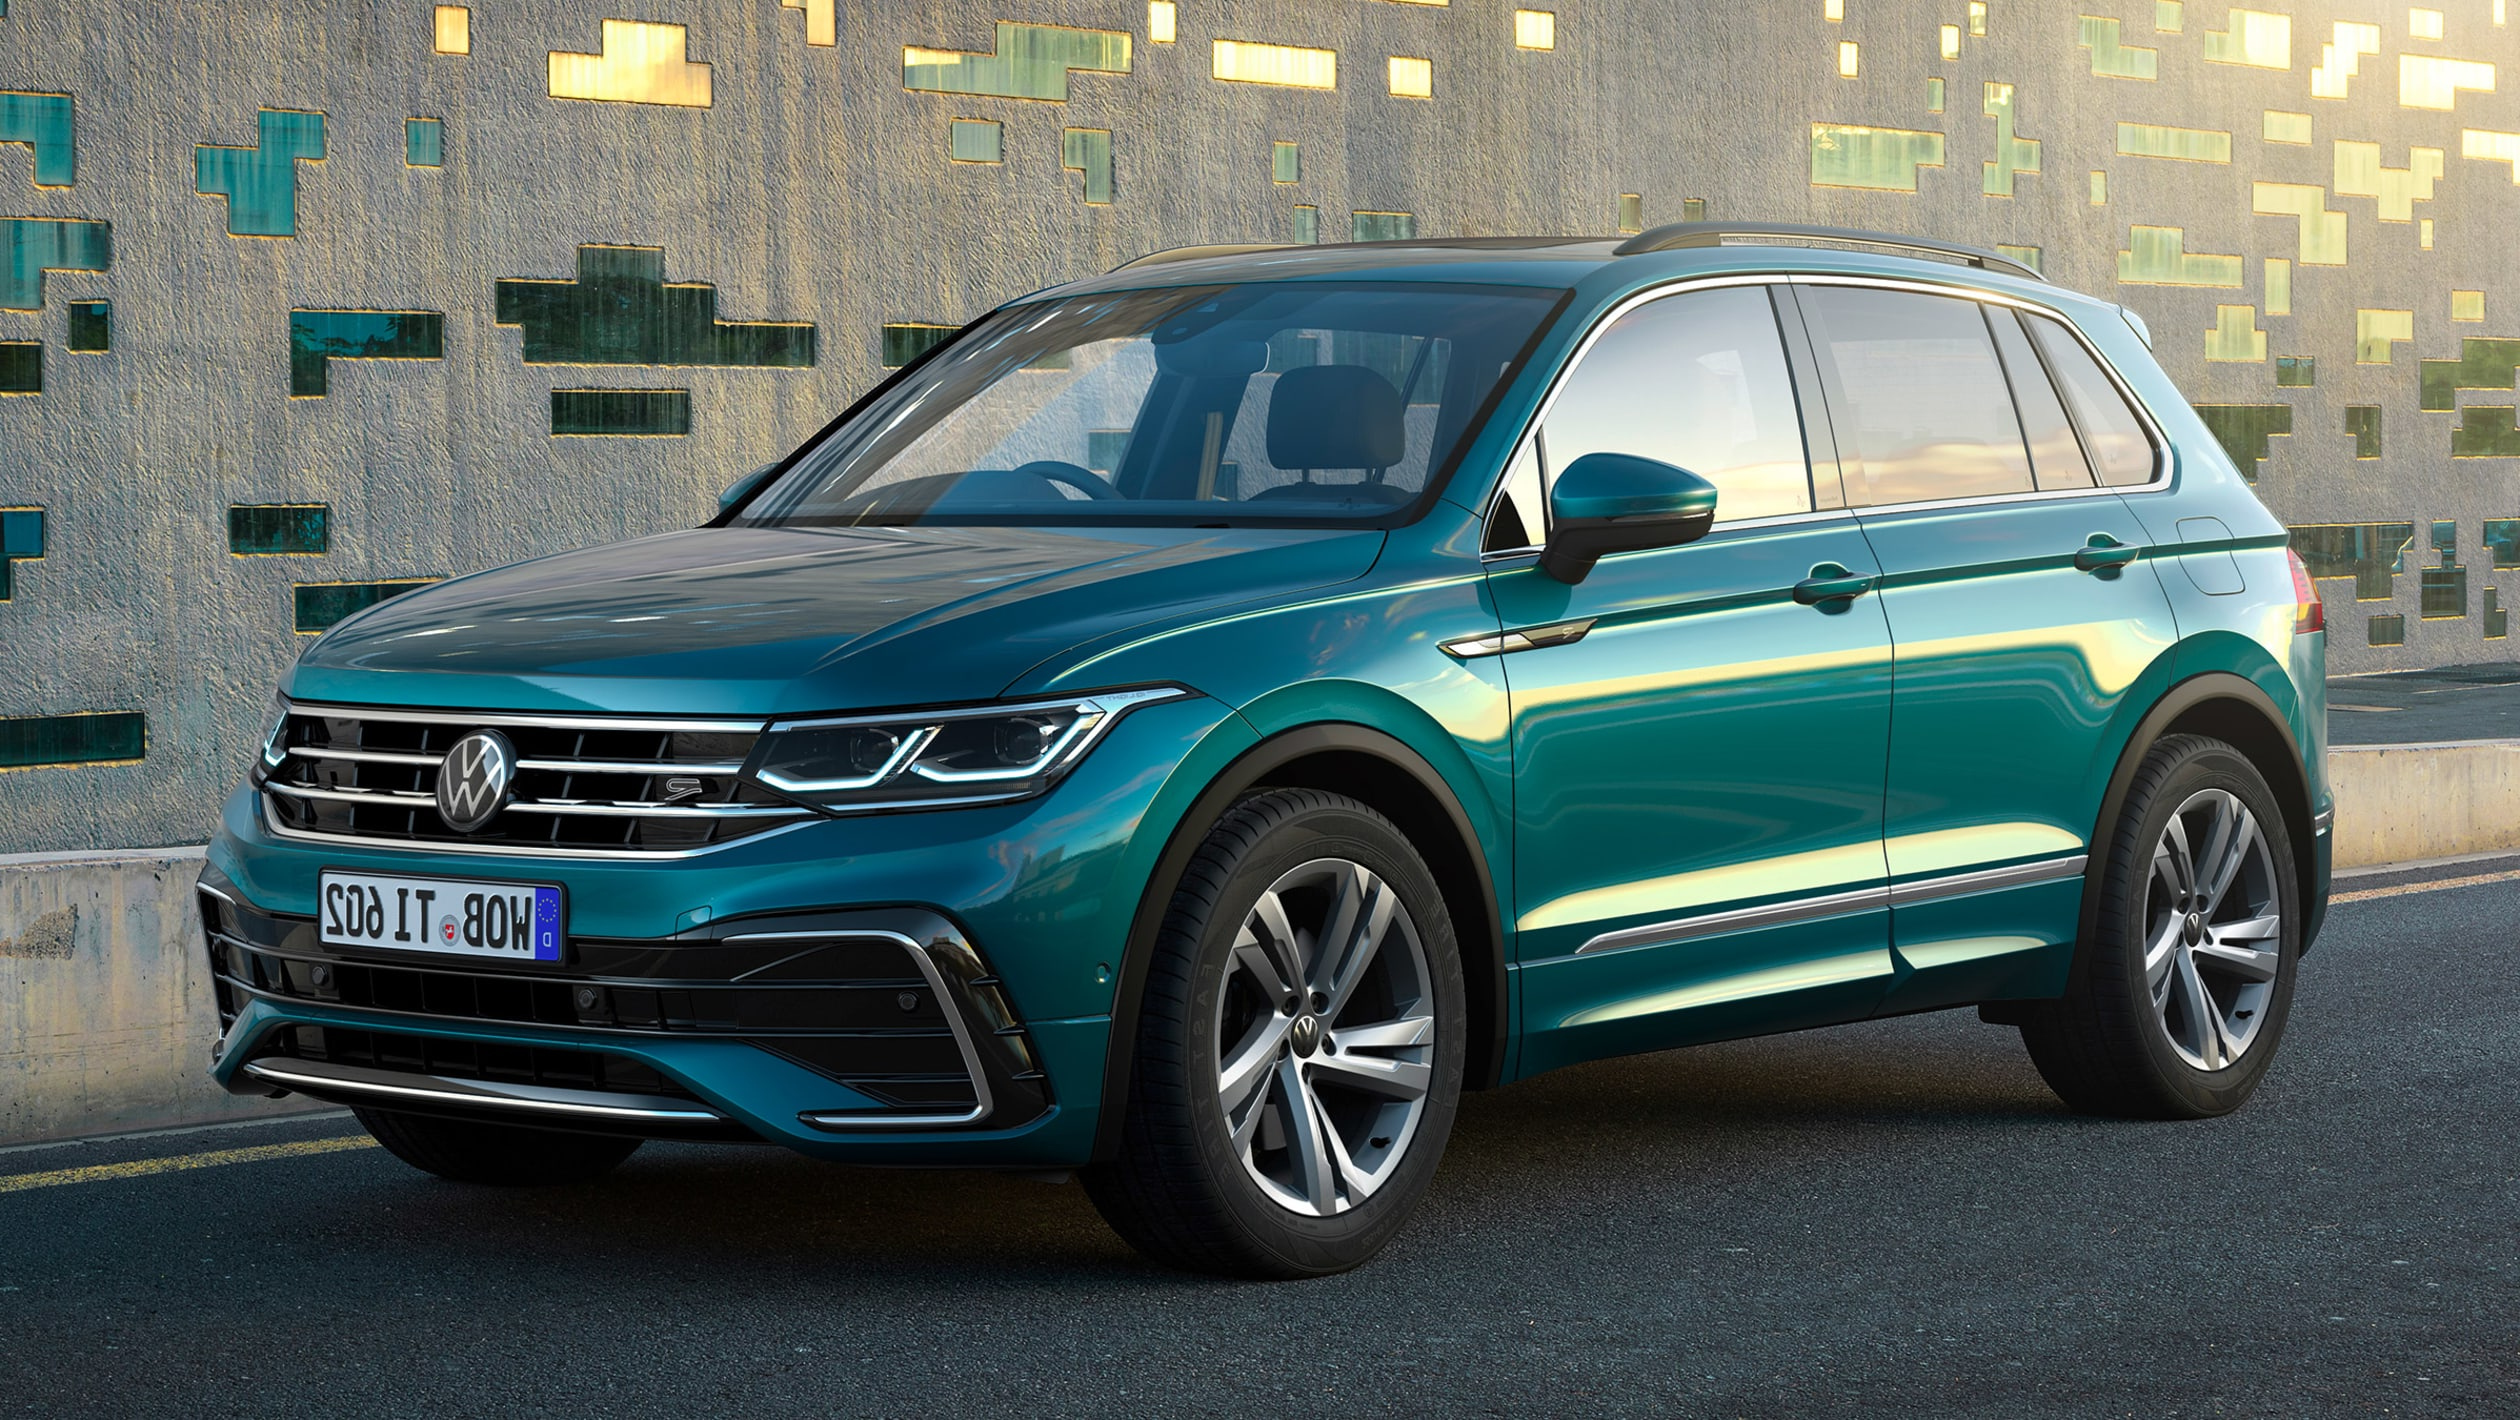 2021 Volkswagen Tiguan Facelift Brings Tech Updates